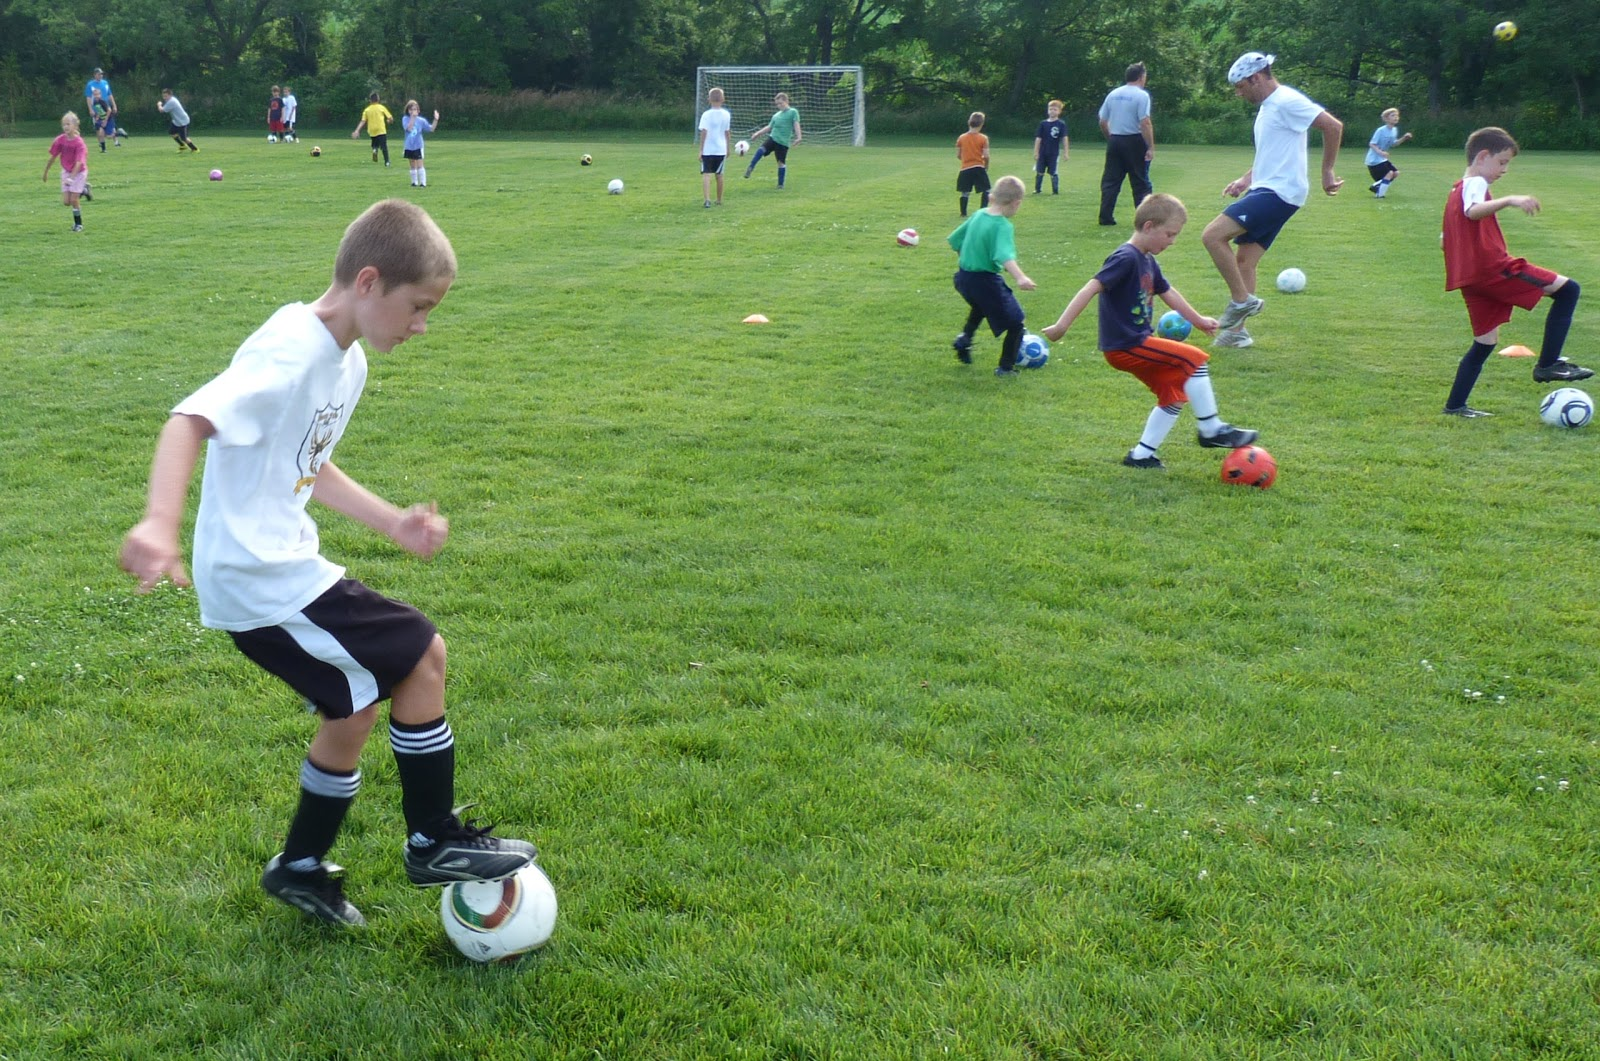 soccer skills The only soccer training and equipment brand online, ran by active and former mls (major league soccer) and epl (english premier league) professional soccer players perfect soccer a team that will use soccer as a vehicle to create over 10 million self disciplined, self sufficient, focused, goal oriented individuals.